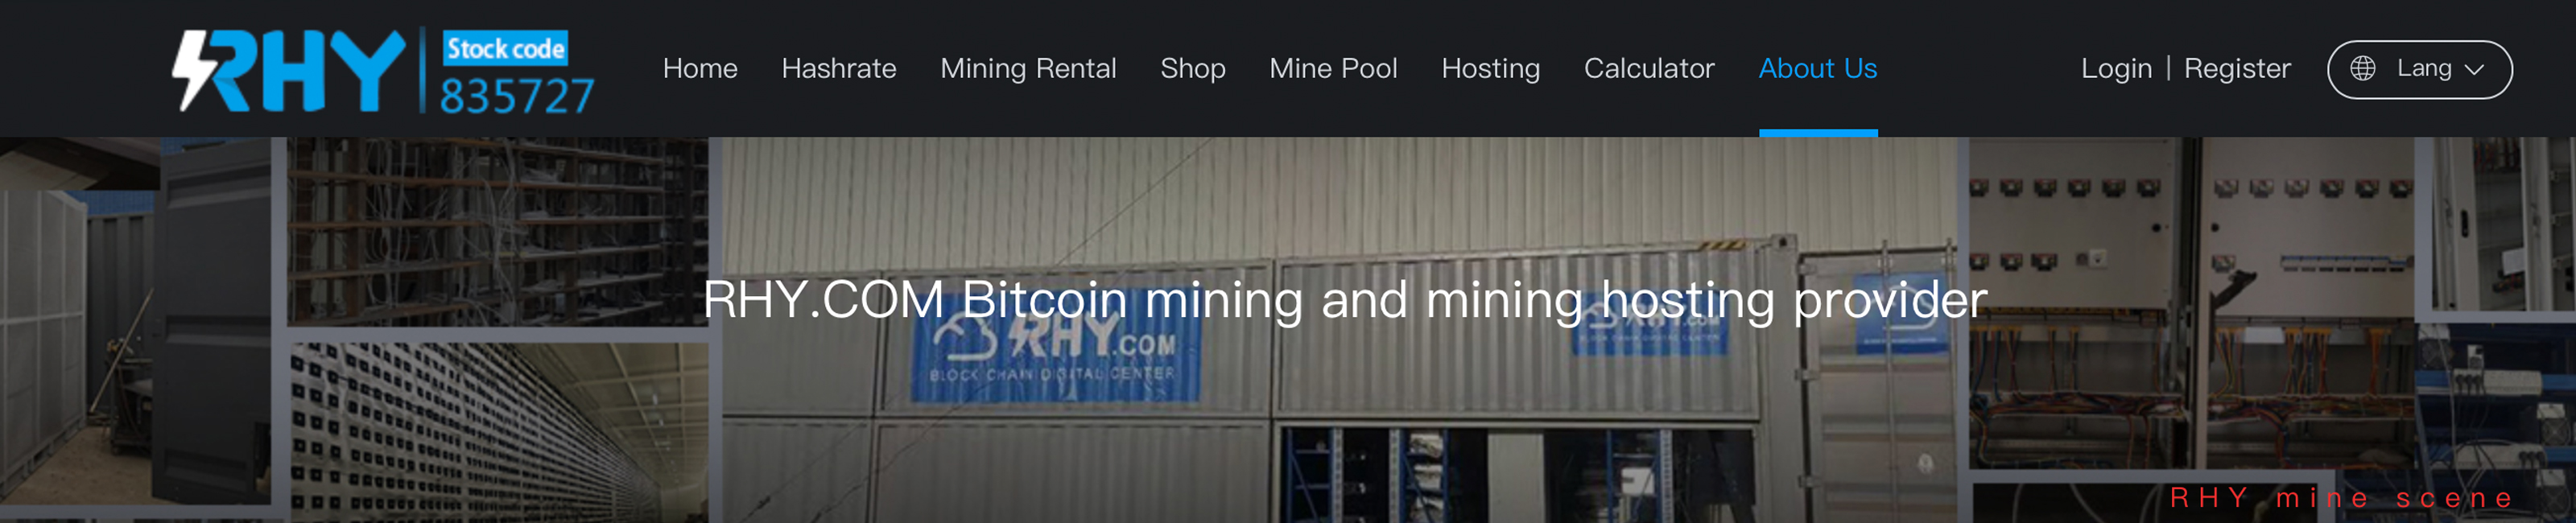 Study: Publicly Listed Chinese Firms Quietly Participate in Bitcoin Mining